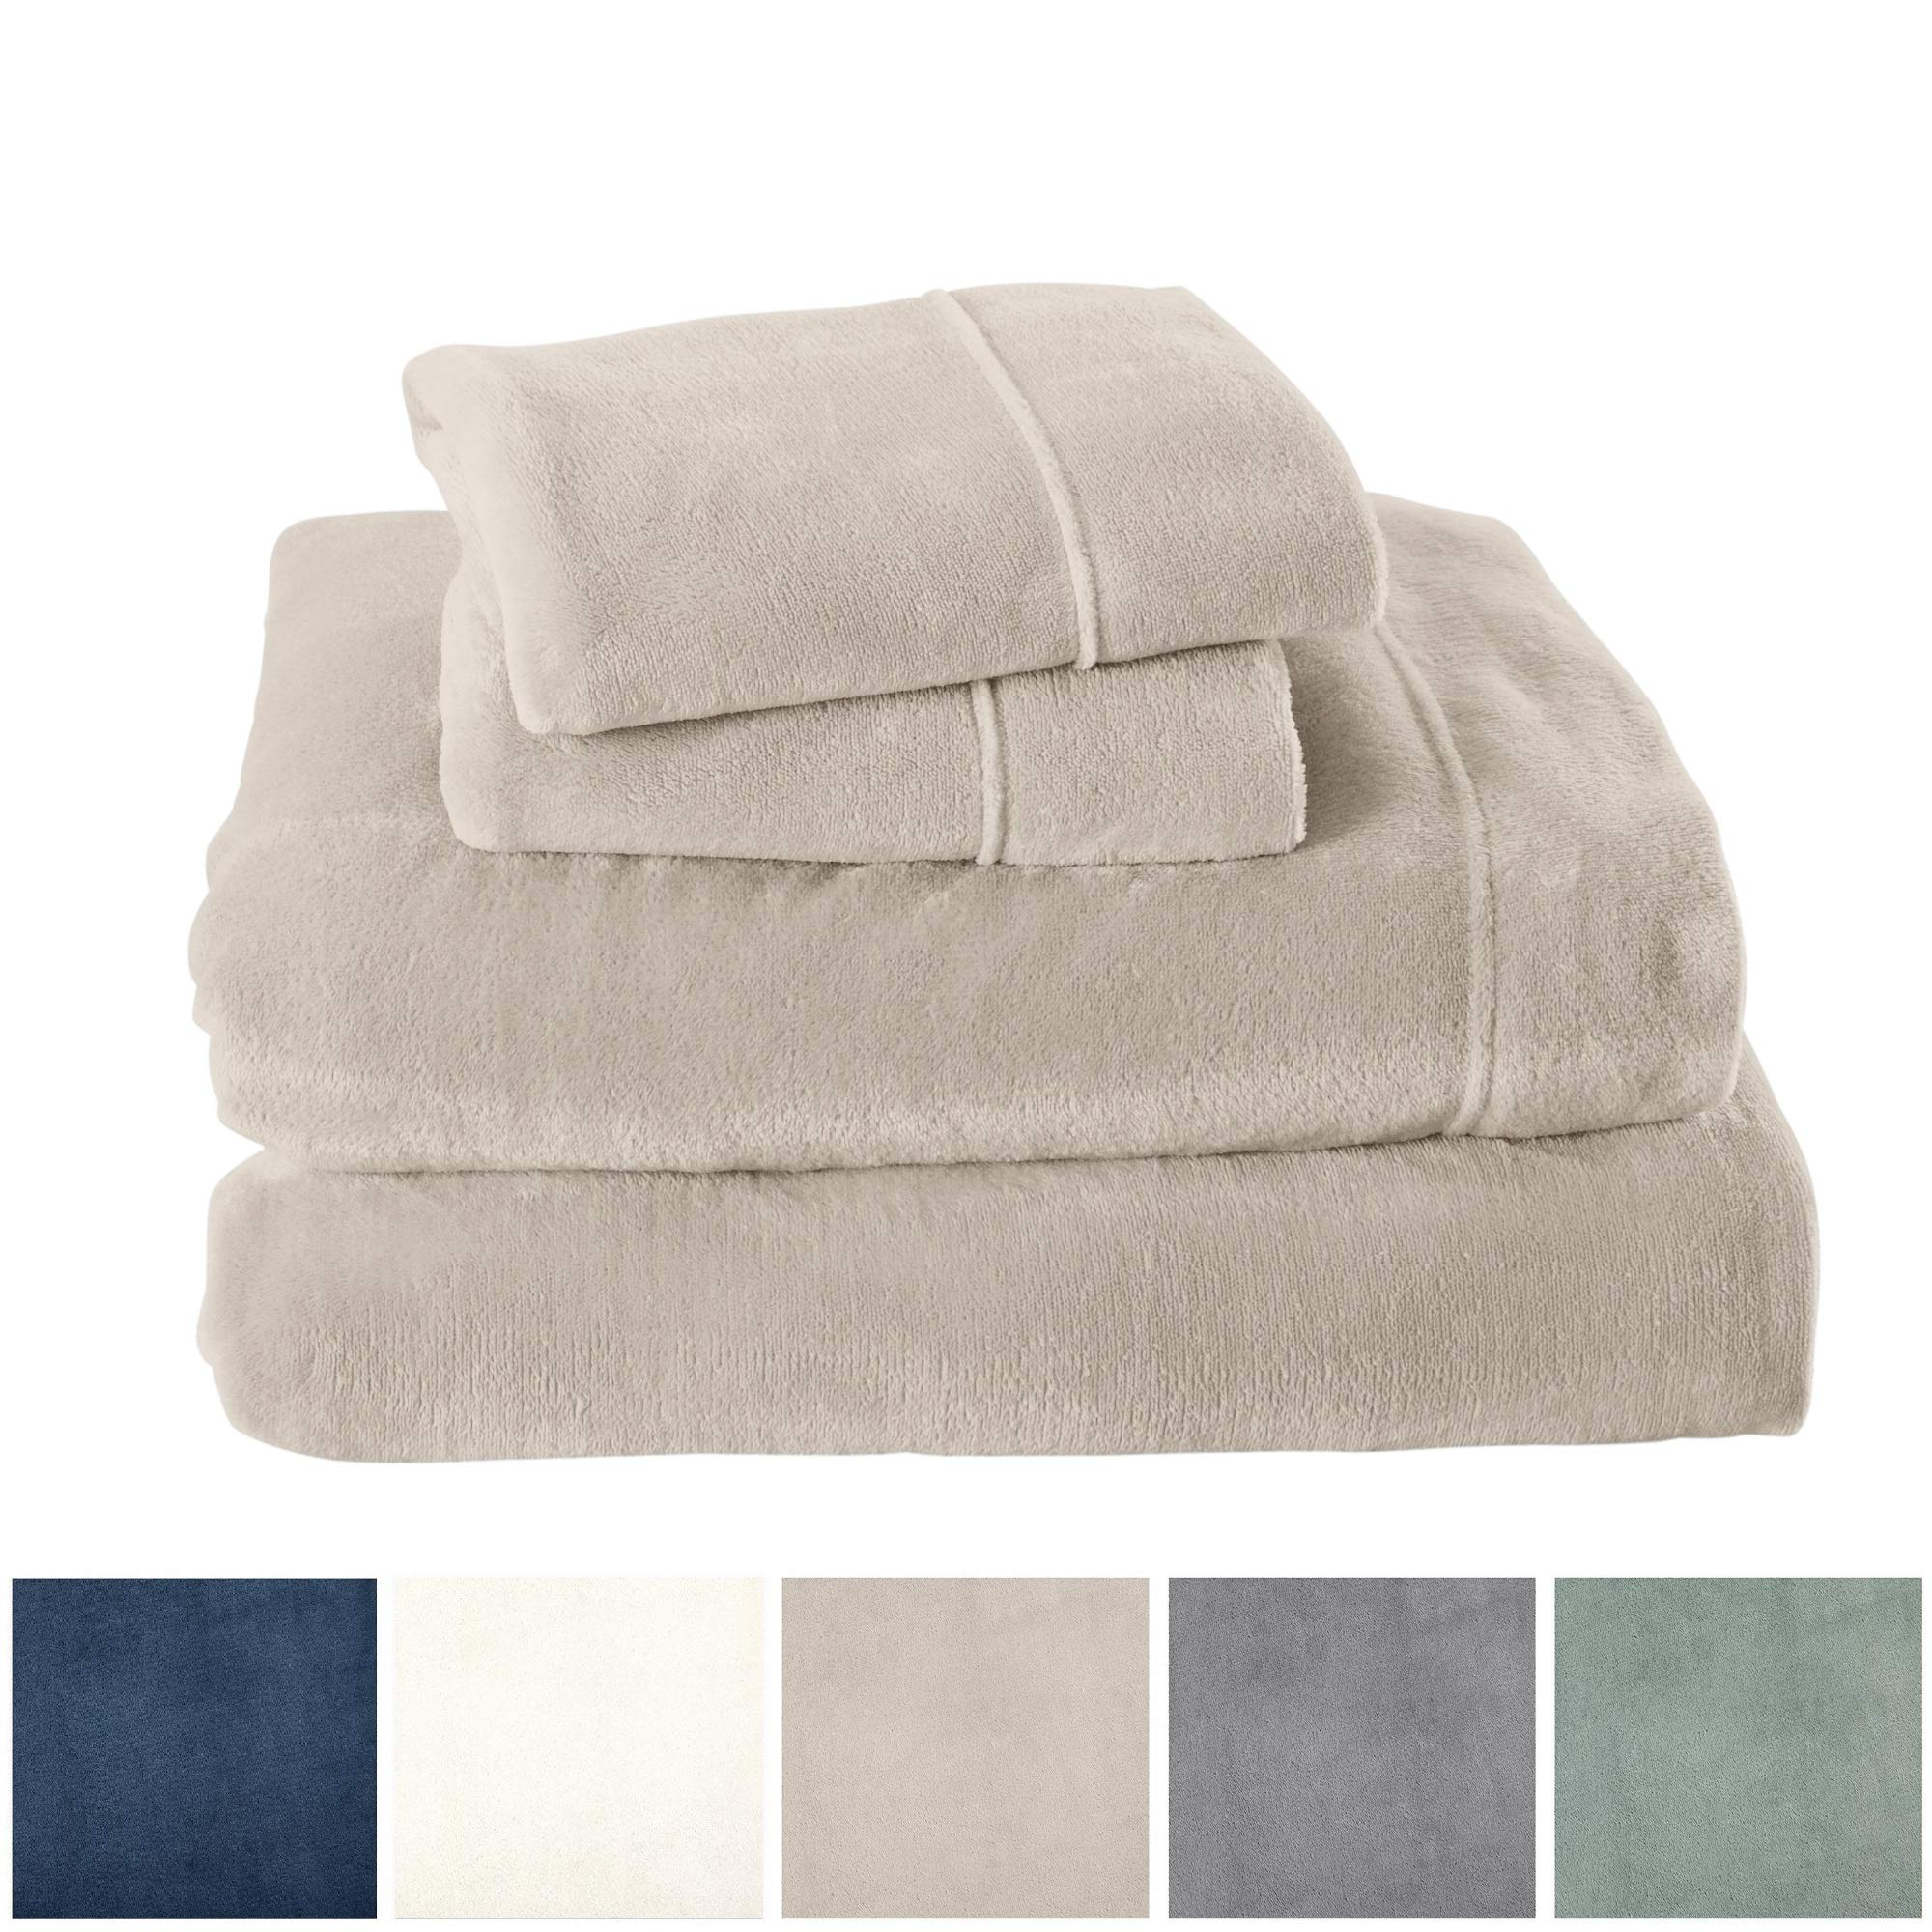 Extra Soft Cozy Velvet Plush Sheet Set. Deluxe Bed Sheets with Deep Pockets. Velvet Luxe Collection (Full, Light Grey)